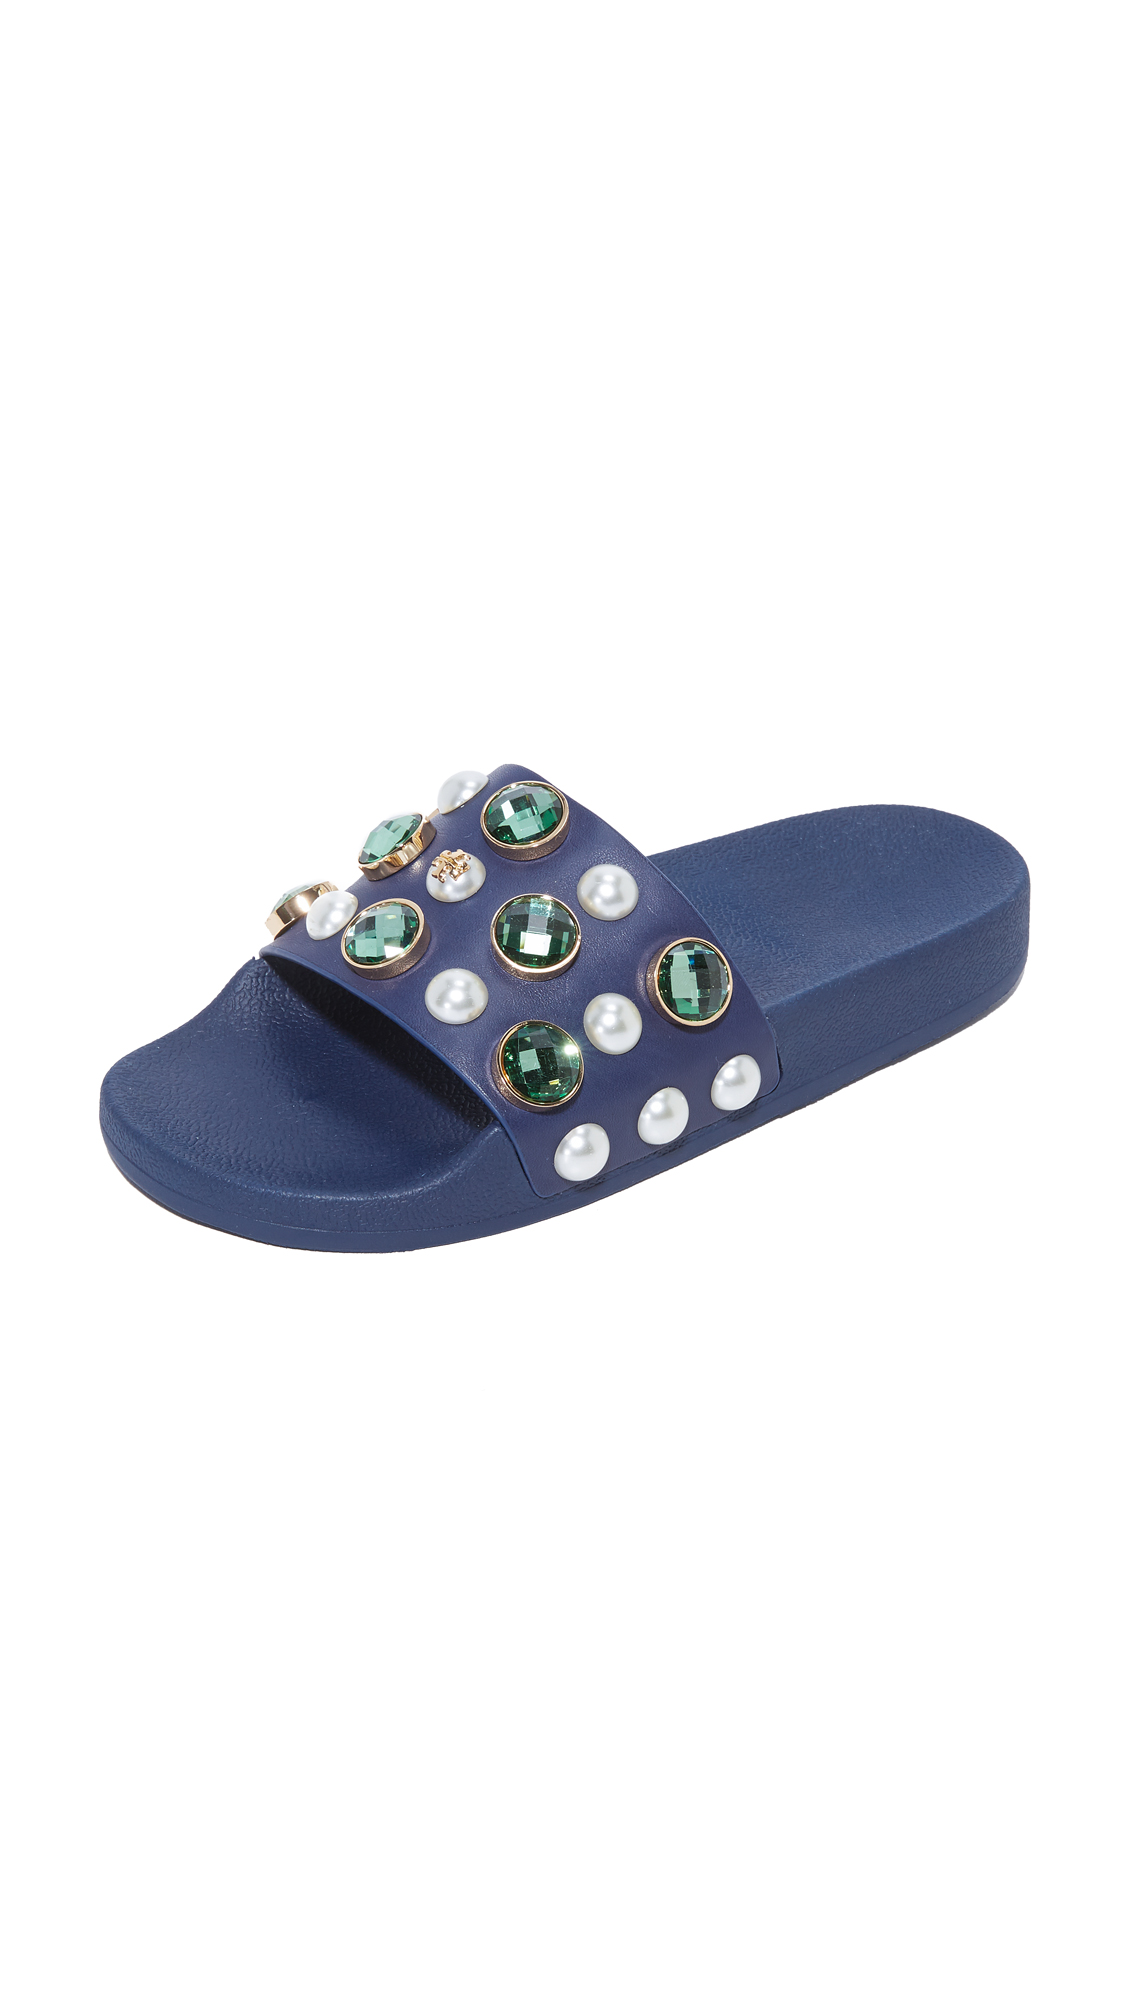 A leather upper with opulent crystals and imitation pearls brings an elevated look to these Tory Burch slides. Contoured insole. Rubber sole. Fabric: Rubber. Imported, China. This item cannot be gift boxed. Available sizes: 5,6,7,8,9,10,11